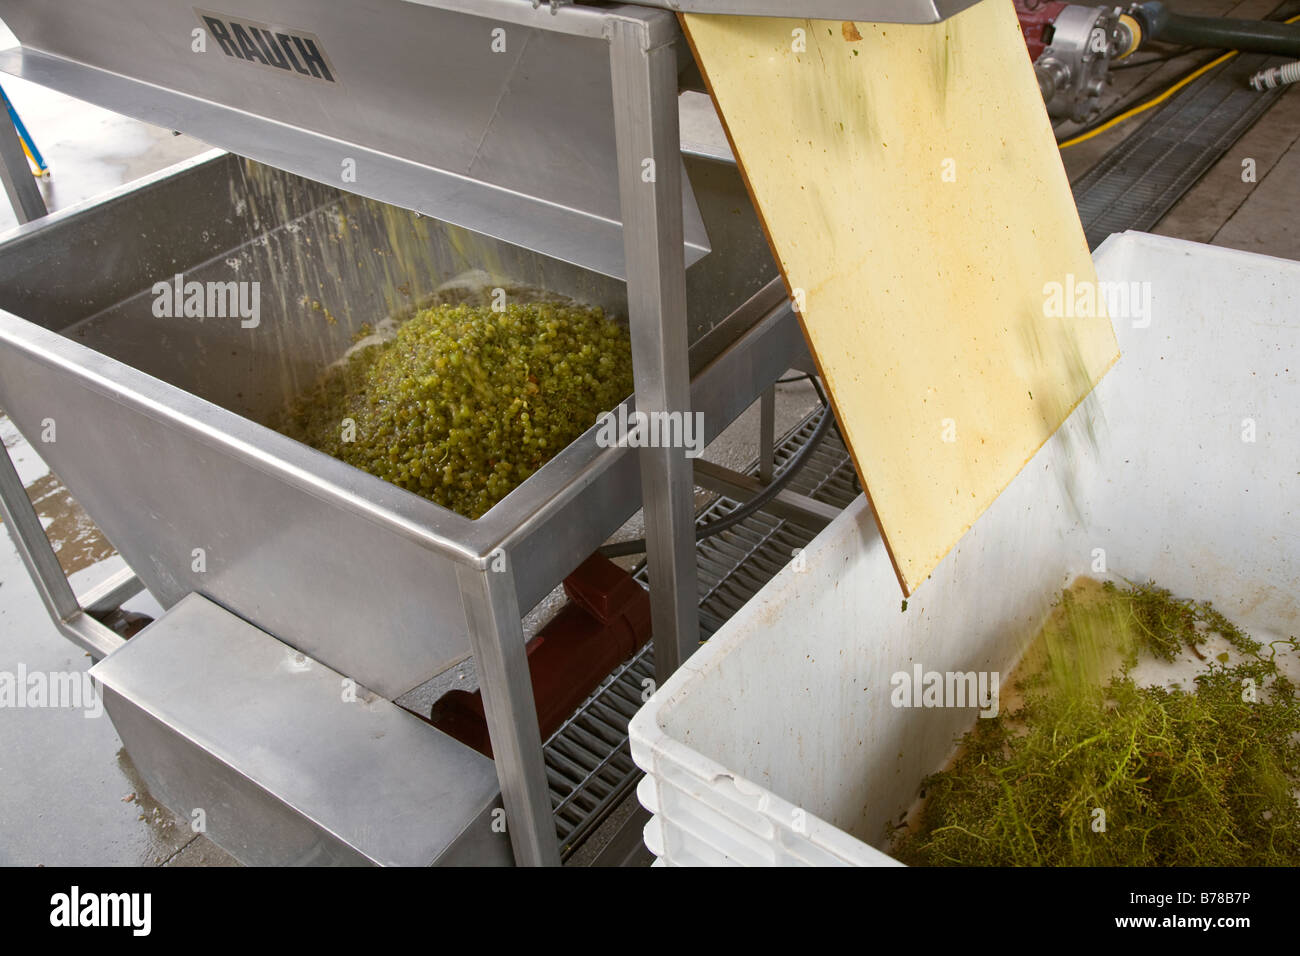 STEMS are removed from CHARDONNAY grapes in a mechanical CRUSHER at JOULLIAN VINEYARDS CARMEL VALLEY CALIFORNIA - Stock Image